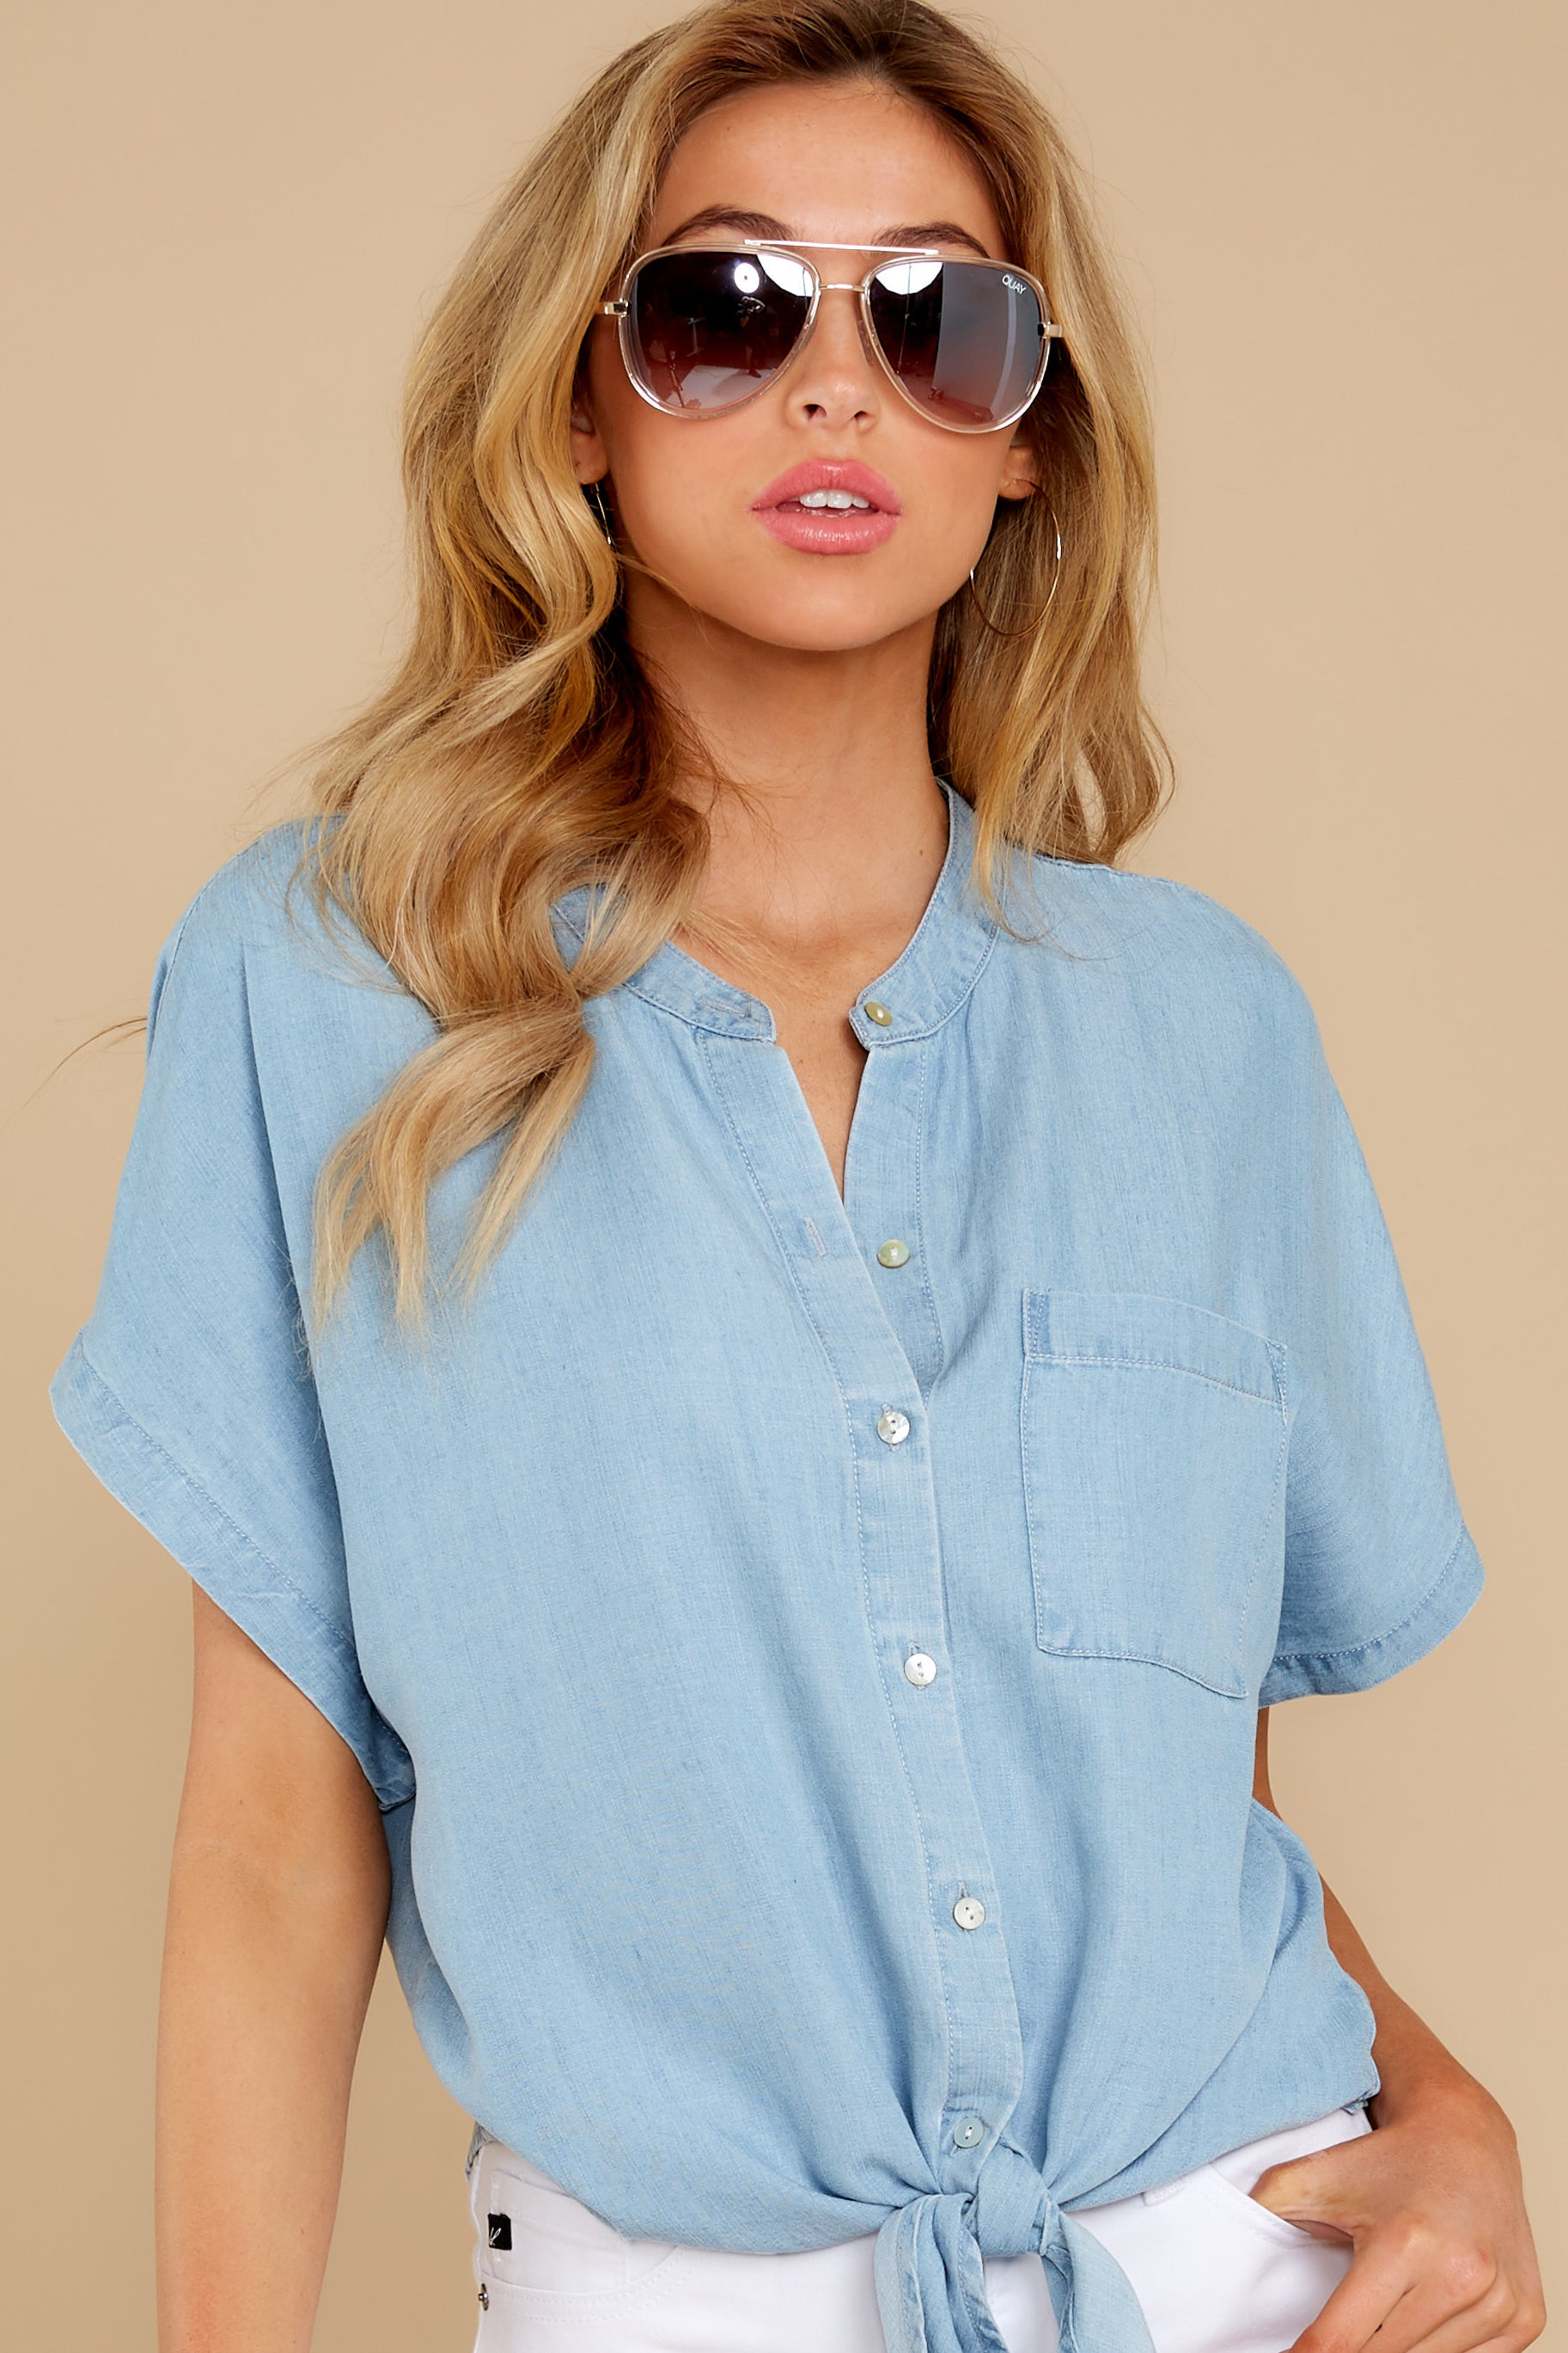 80s Tops, Shirts, T-shirts, Blouse Here We Go Again Chambray Tie Top Blue $46.00 AT vintagedancer.com